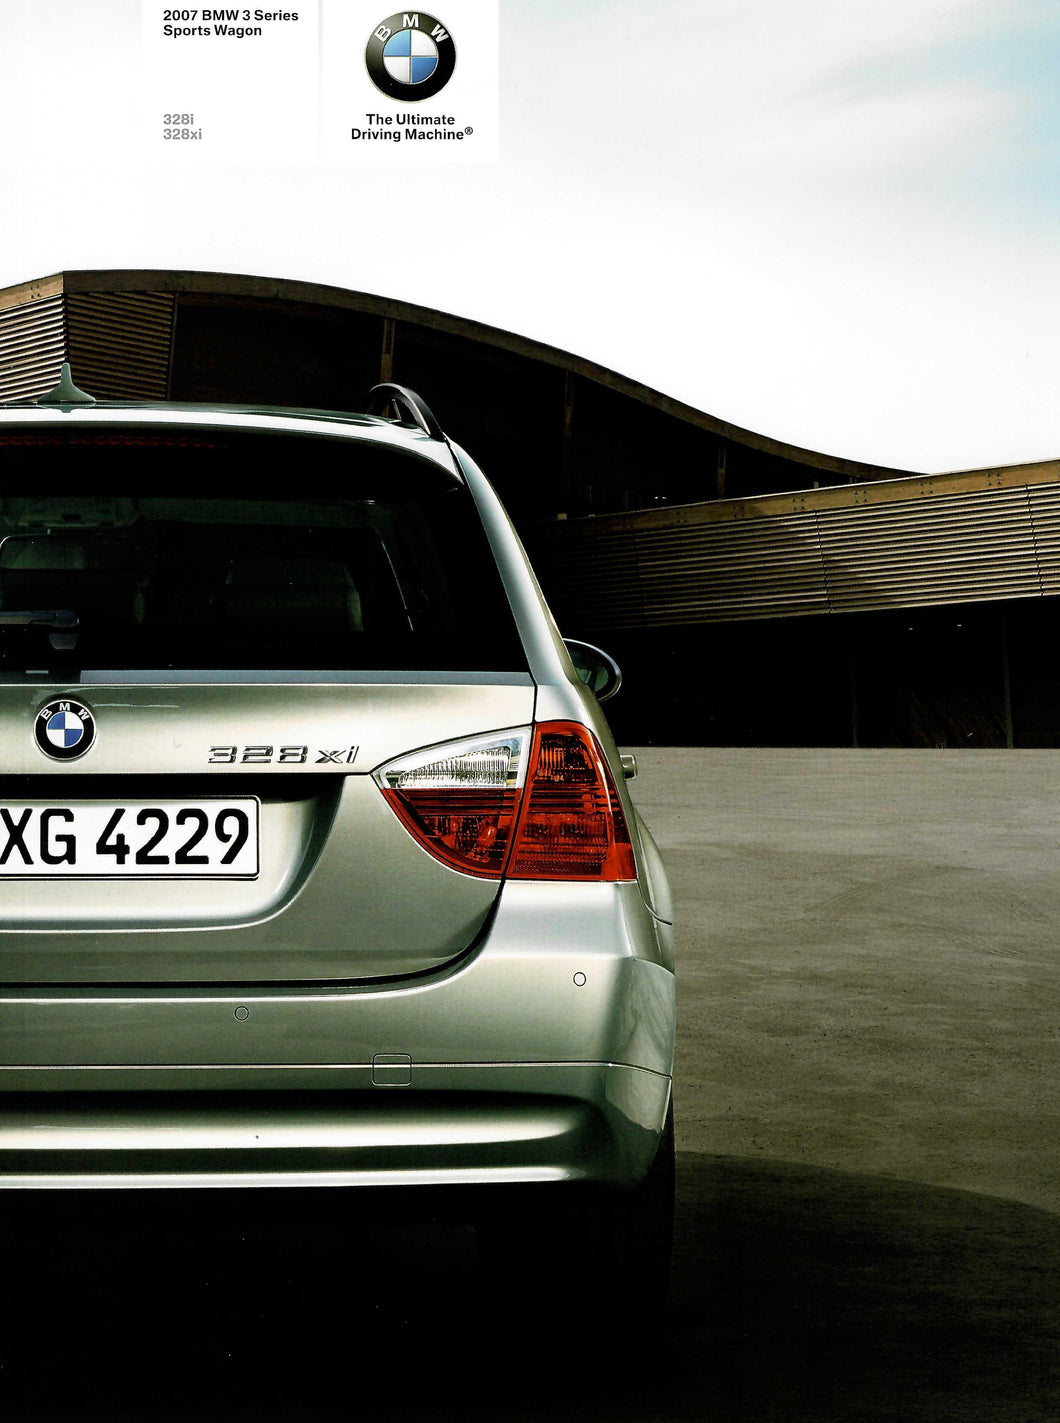 Brochure - The 2007 BMW 3 -Series Sports Wagon 328i 328xi (1st version)